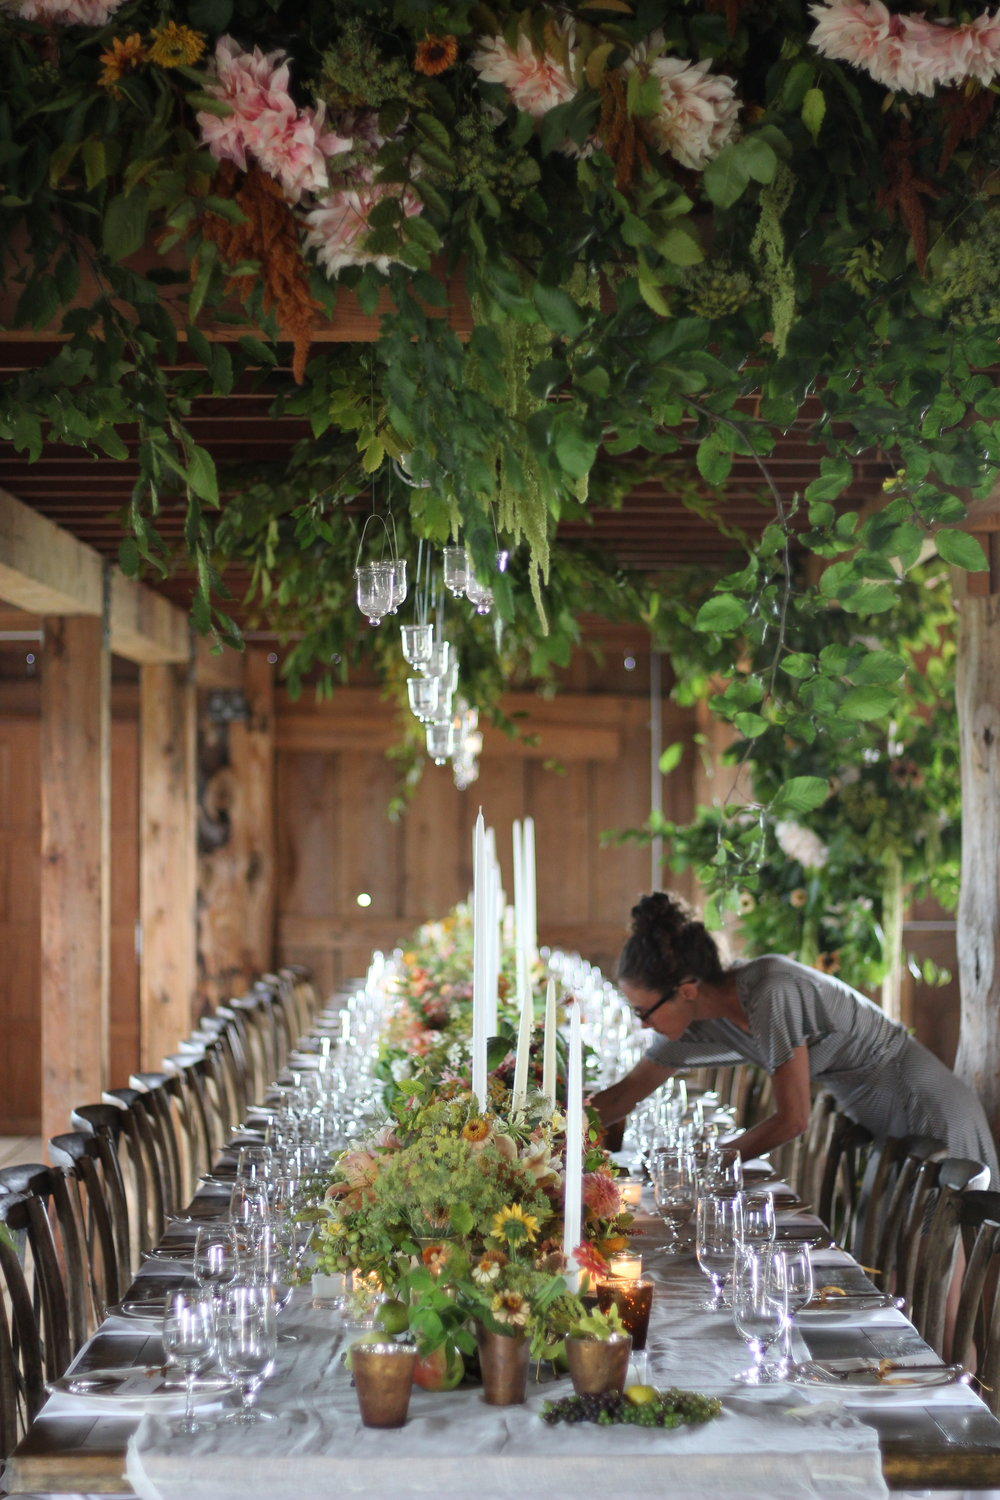 Gretchen O'Neil, fellow team member, lighting candles.  Table design by Becca Blue and floral installation by Sue McLeary.